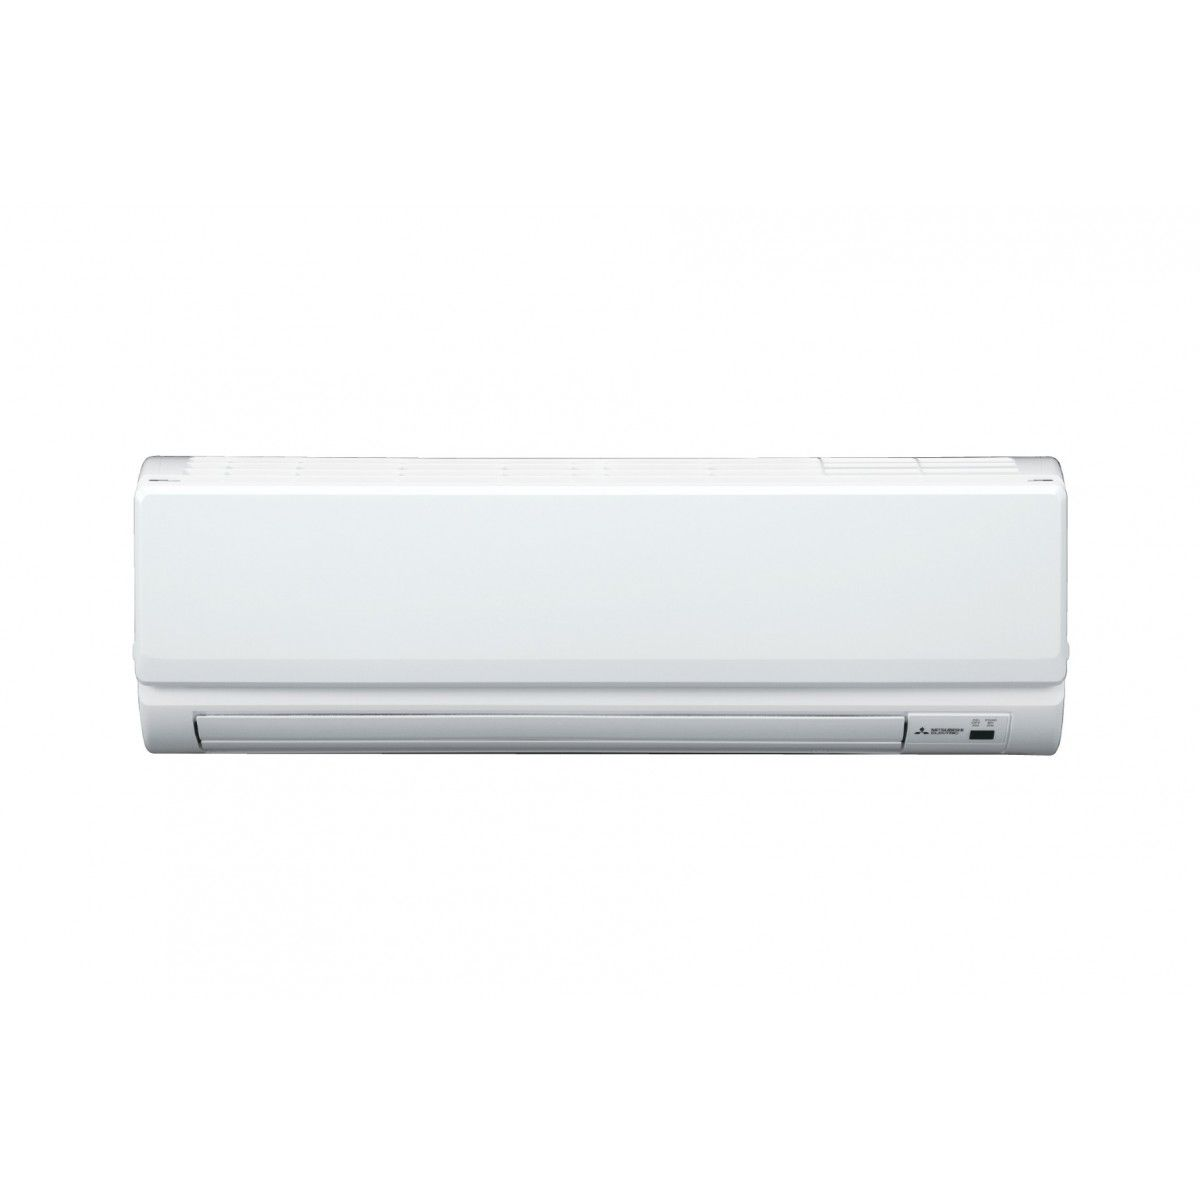 18k Btu Mitsubishi Pkaa Wall Mounted Indoor Unit In